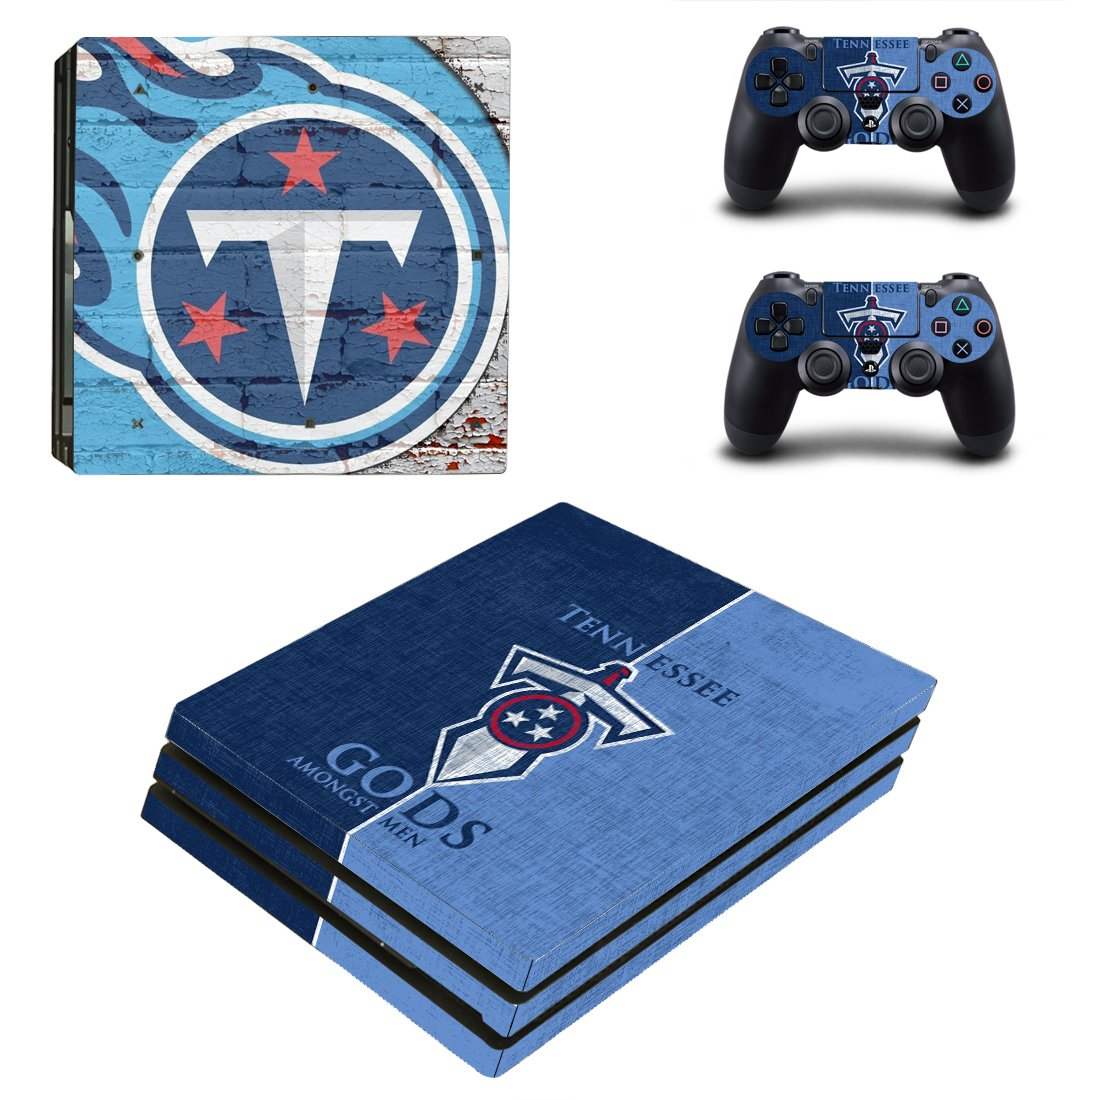 NFL PS4 Pro Skin Sticker Wrap